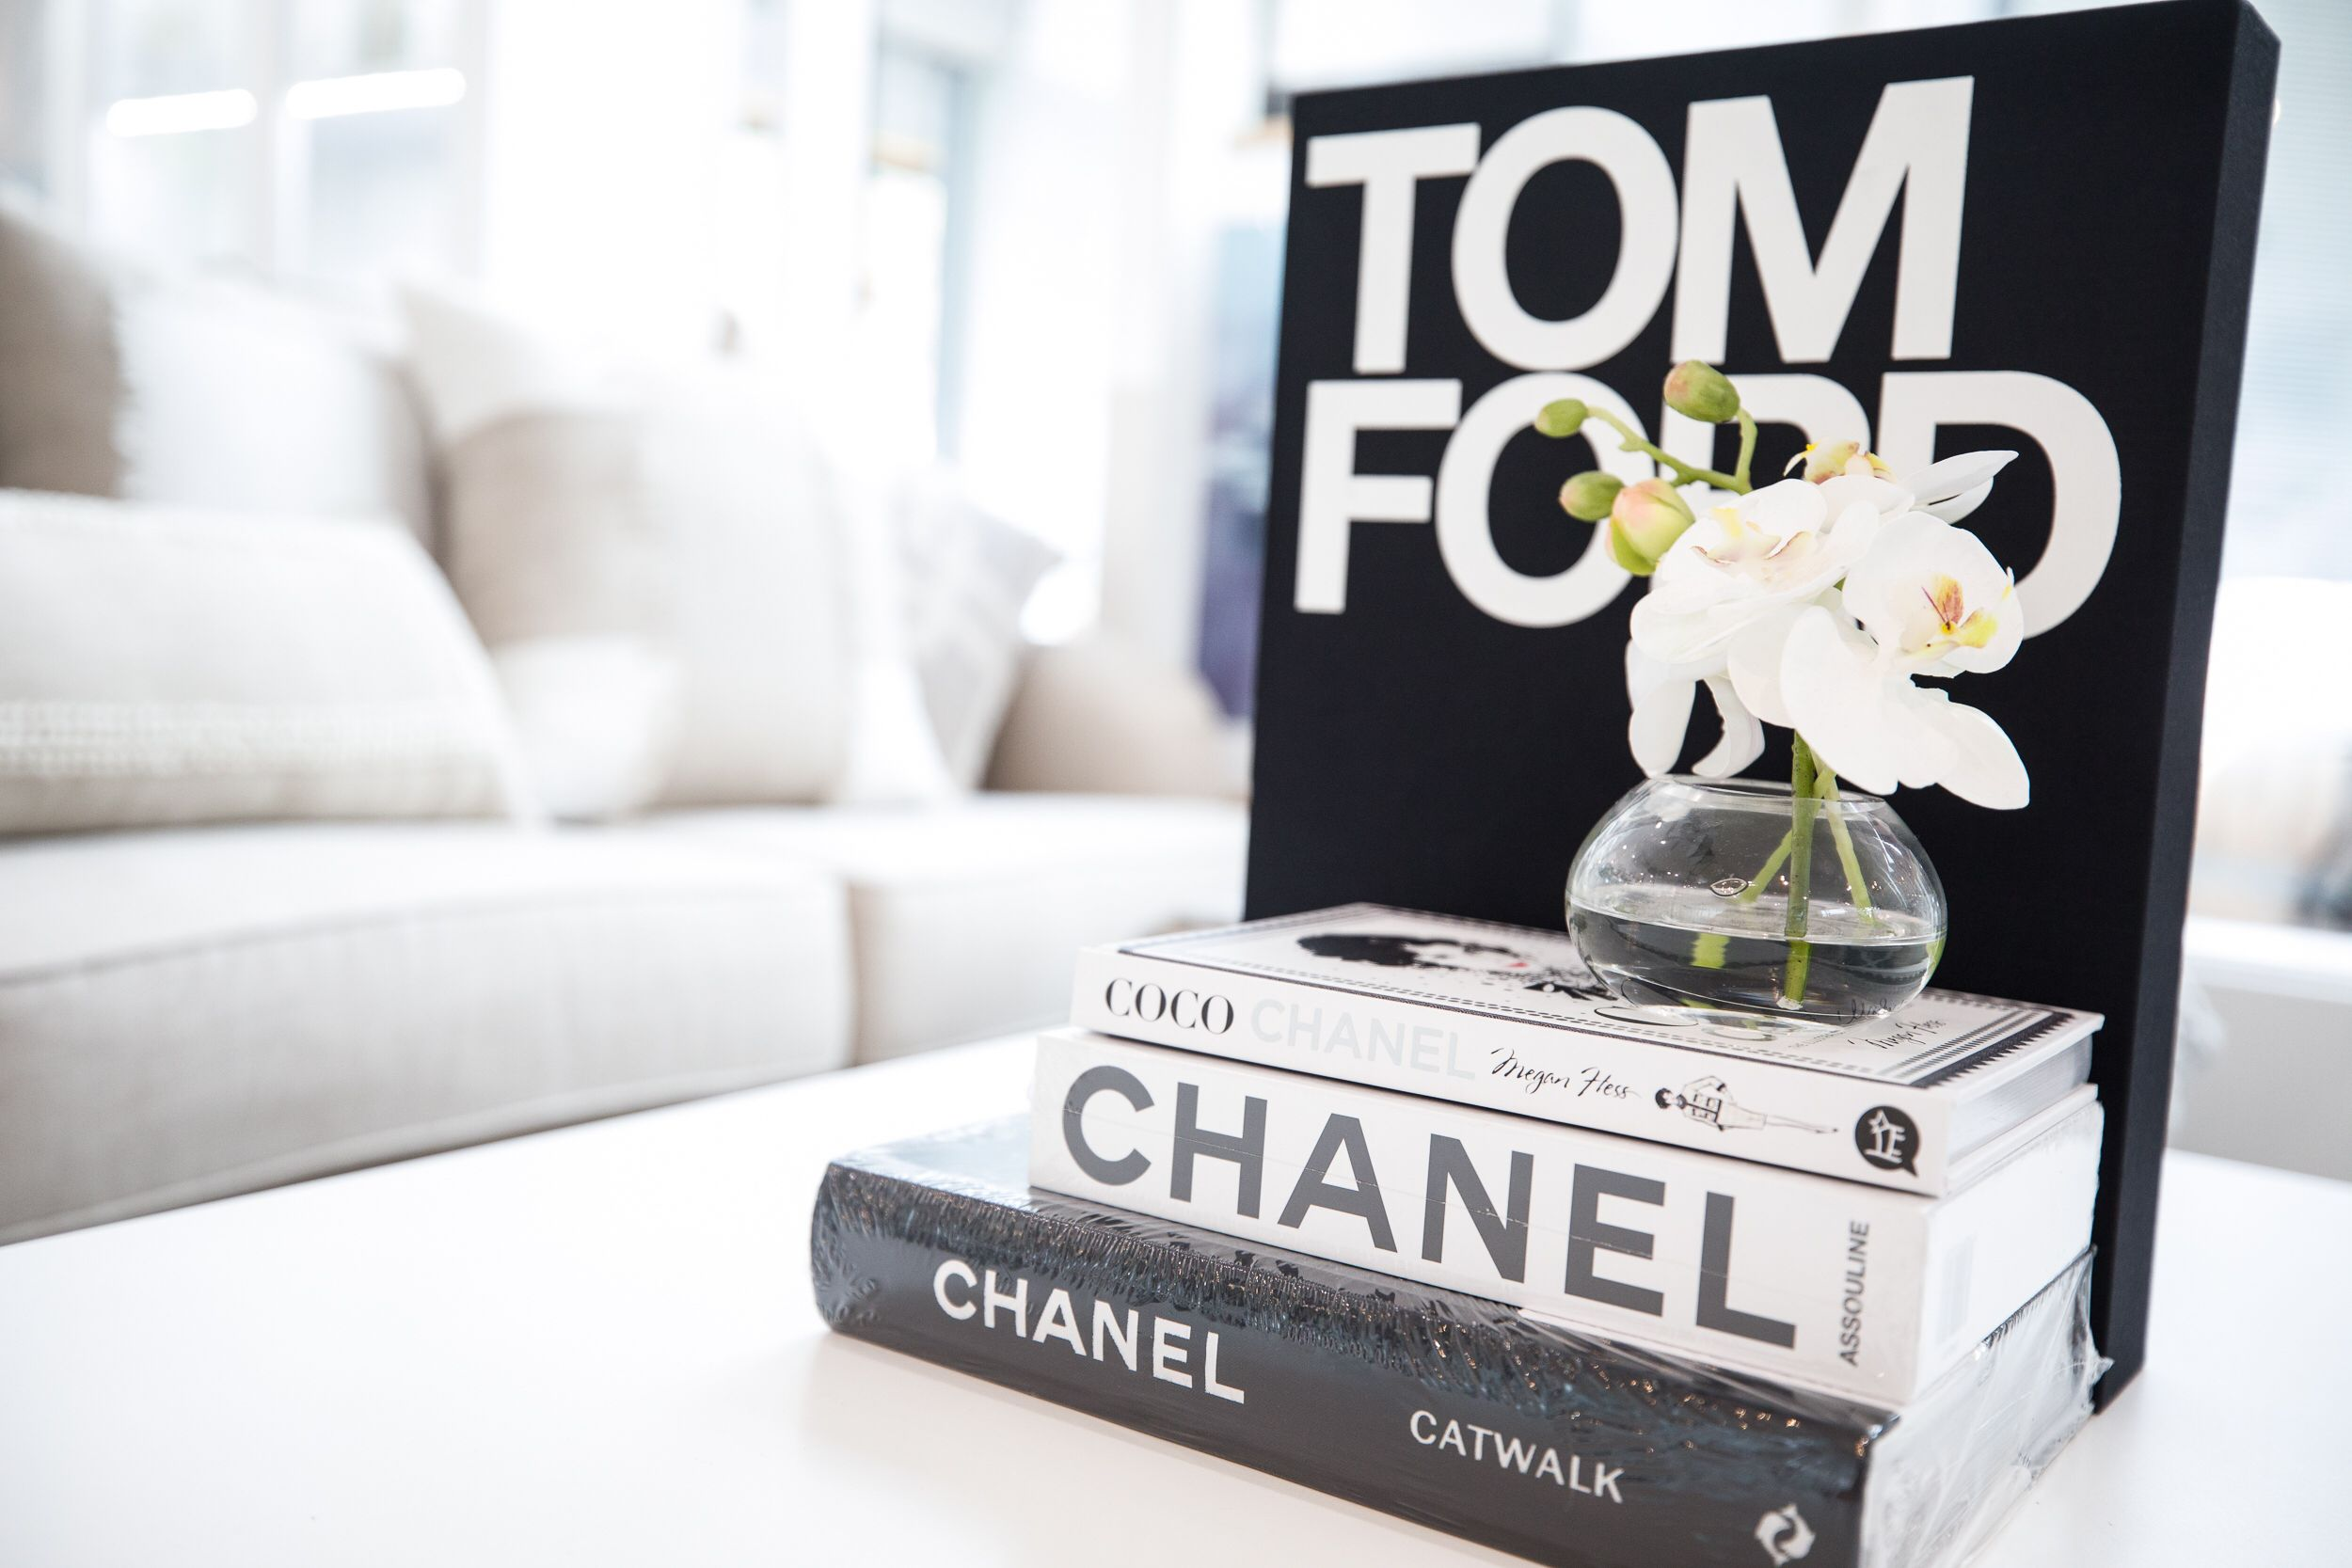 Tom Ford And Chanel Book Stack Compliment Your Coffee Table